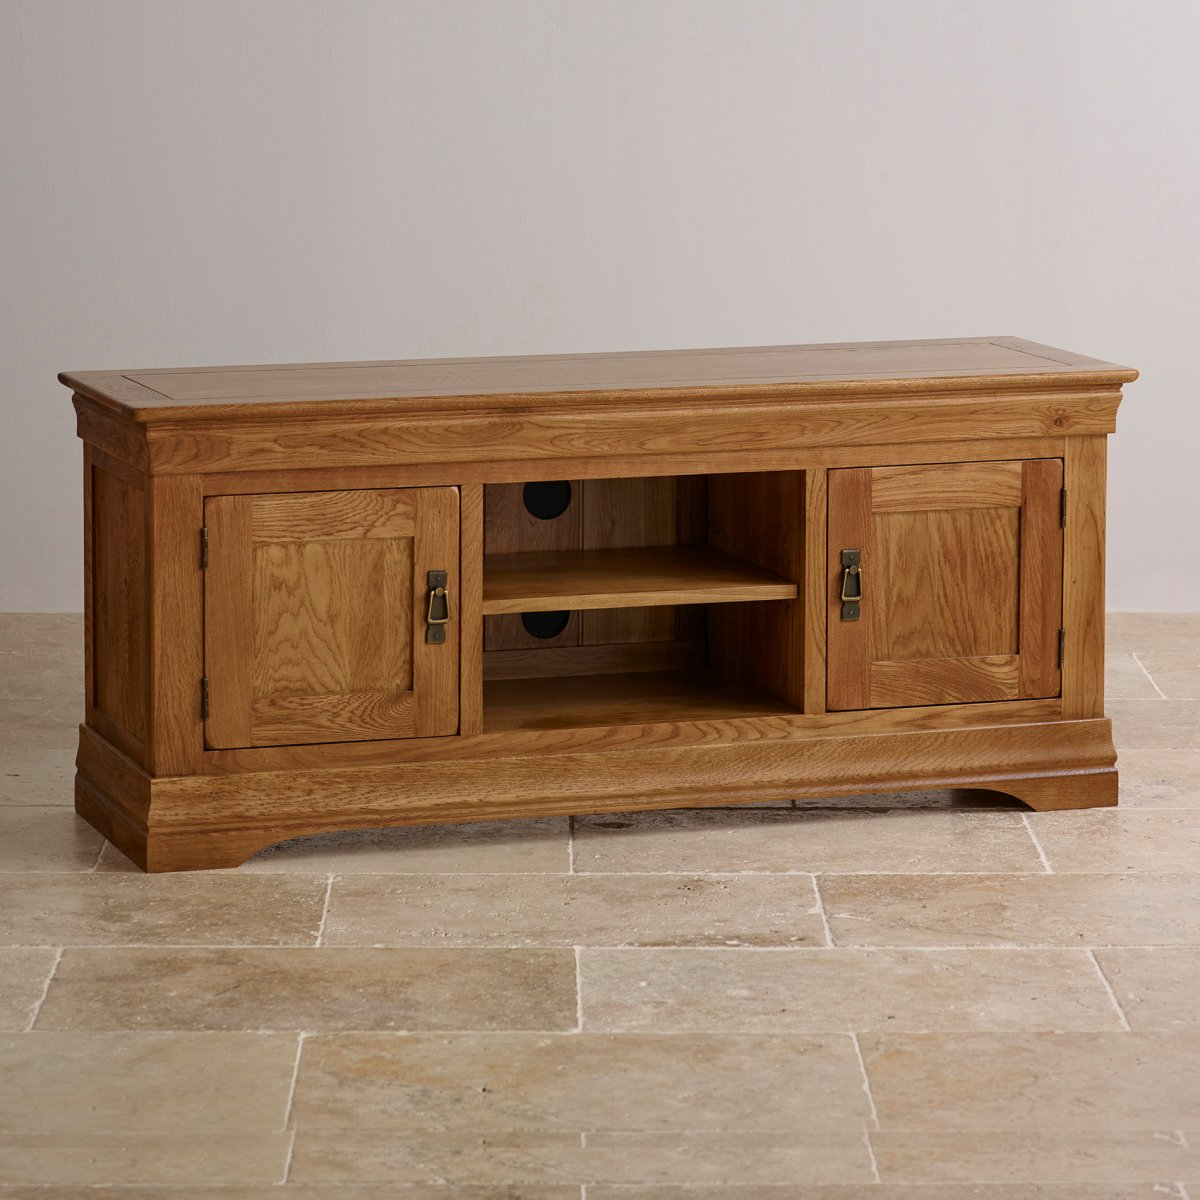 French farmhouse tv cabinet in solid oak oak furniture land for Solid oak furniture